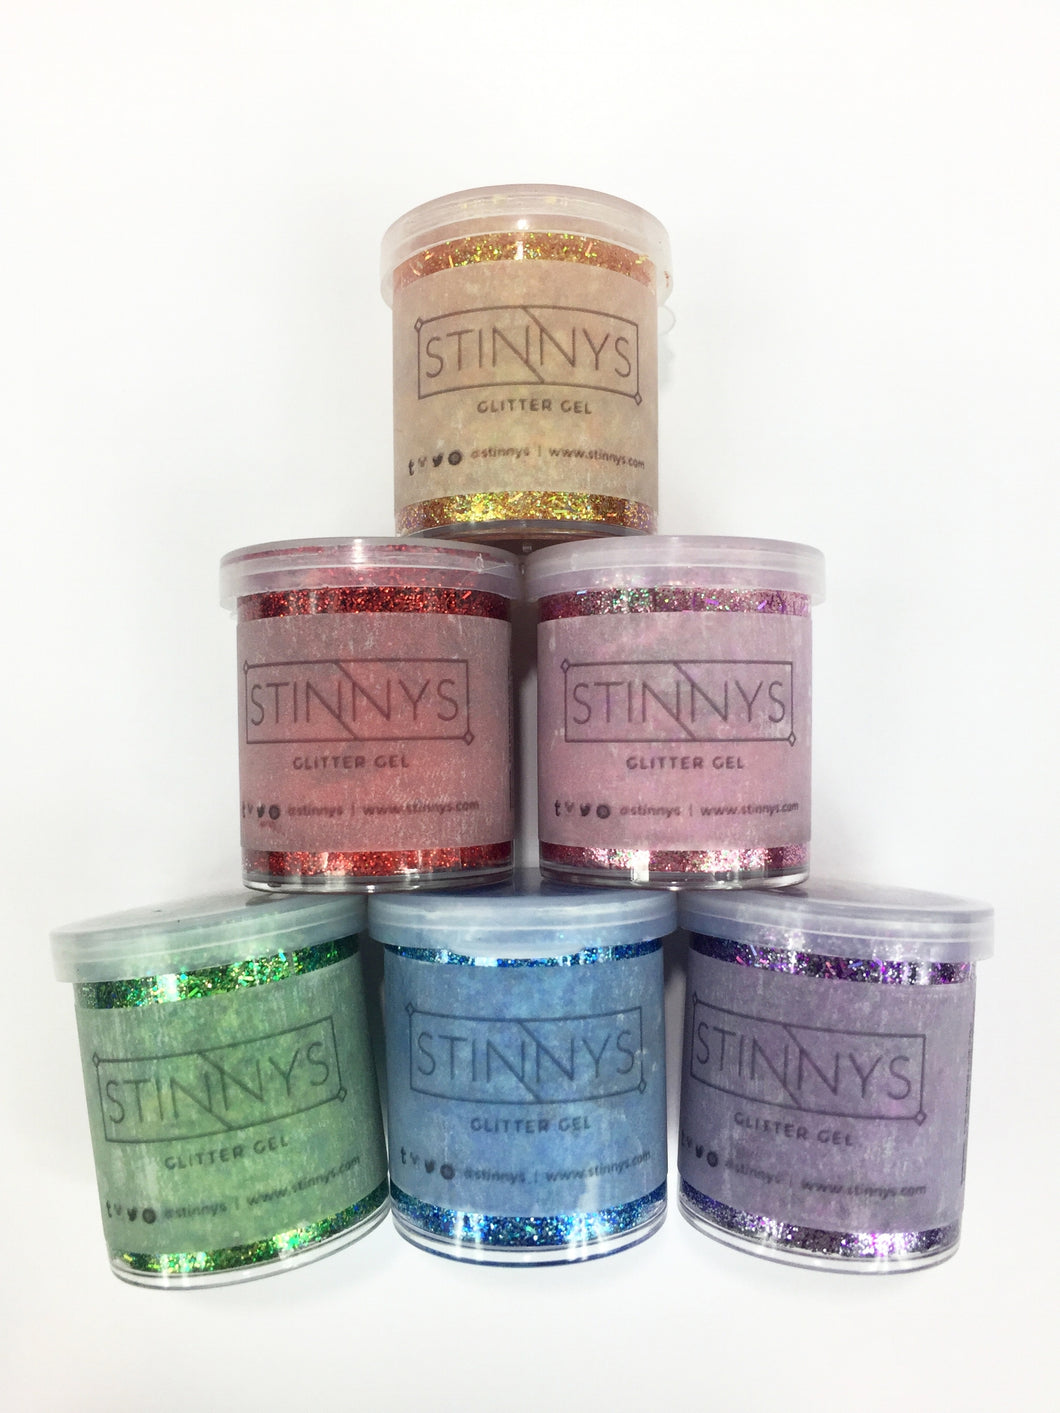 Body Glitter Gel - Stinnys